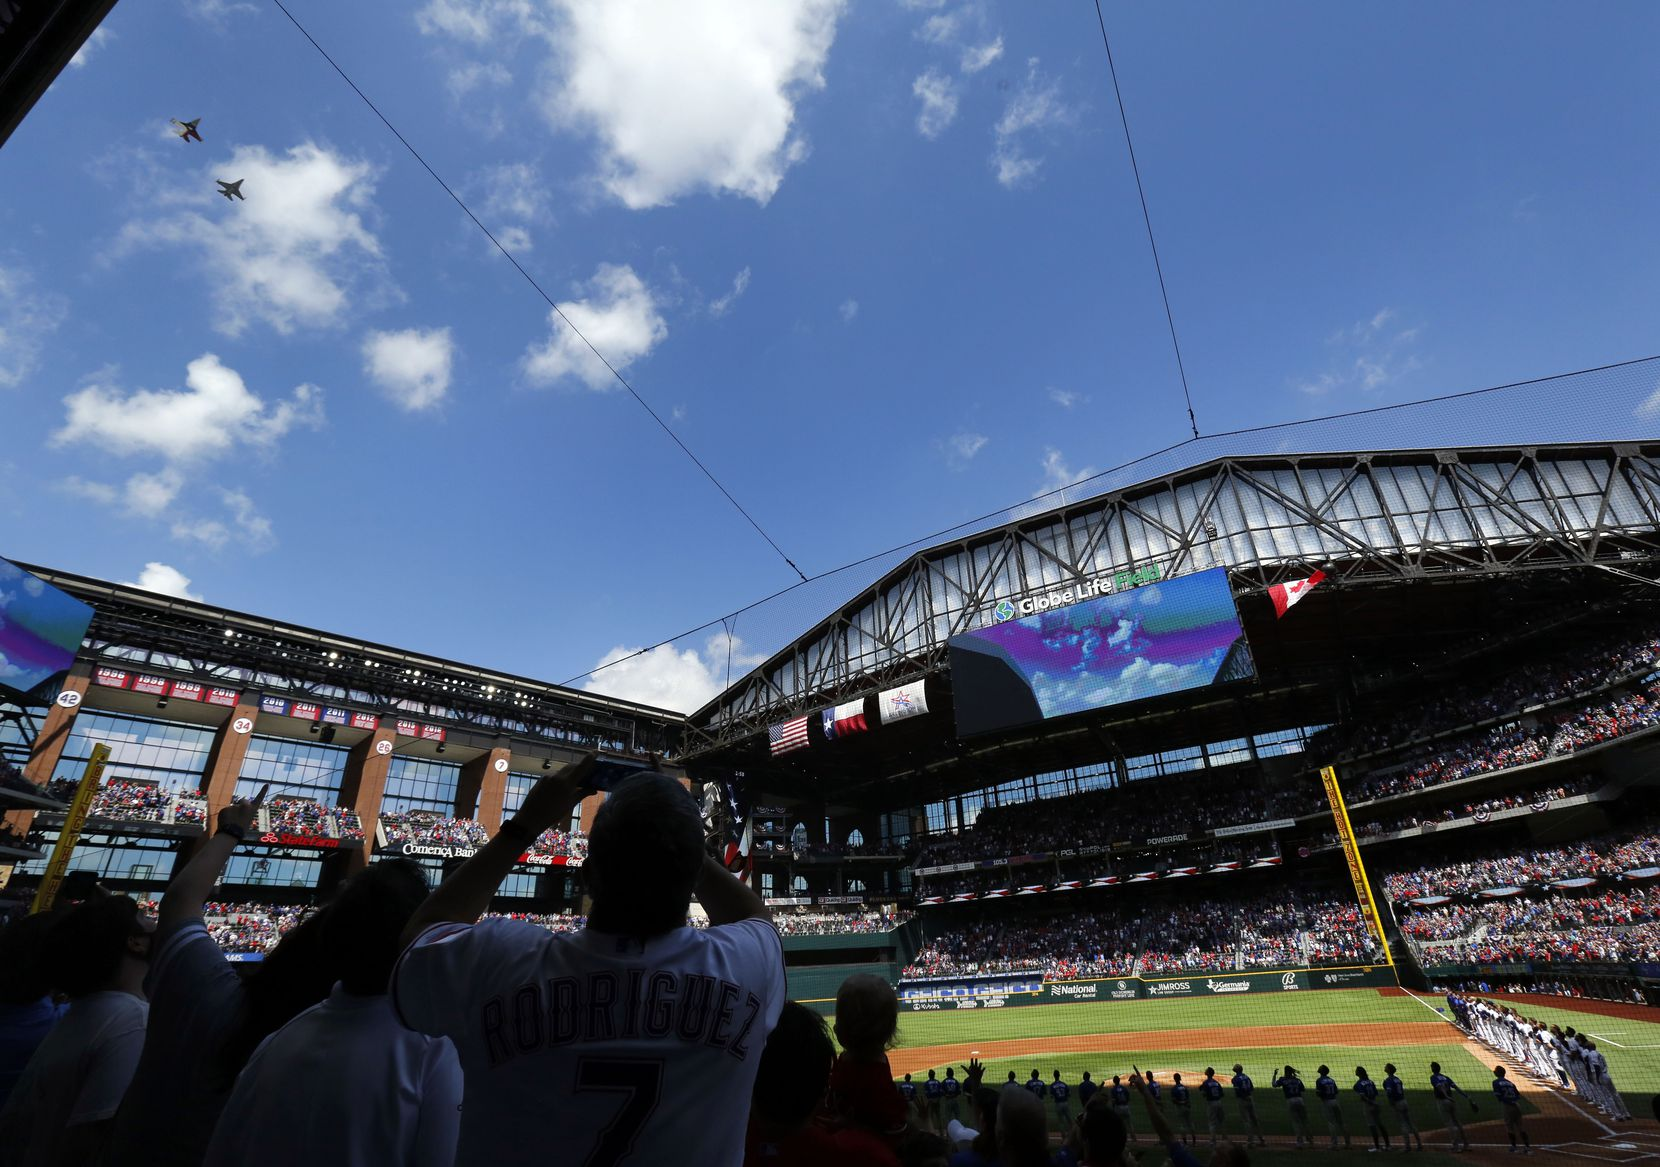 A pair of F-16 fighter jets flows over the the nearly sold-out Texas Rangers crowd following the national anthem on Opening Day at Globe Life Field in Arlington, Monday, April 5, 2021. The Rangers are facing the Toronto Blue Jays in the home opener. (Tom Fox/The Dallas Morning News)